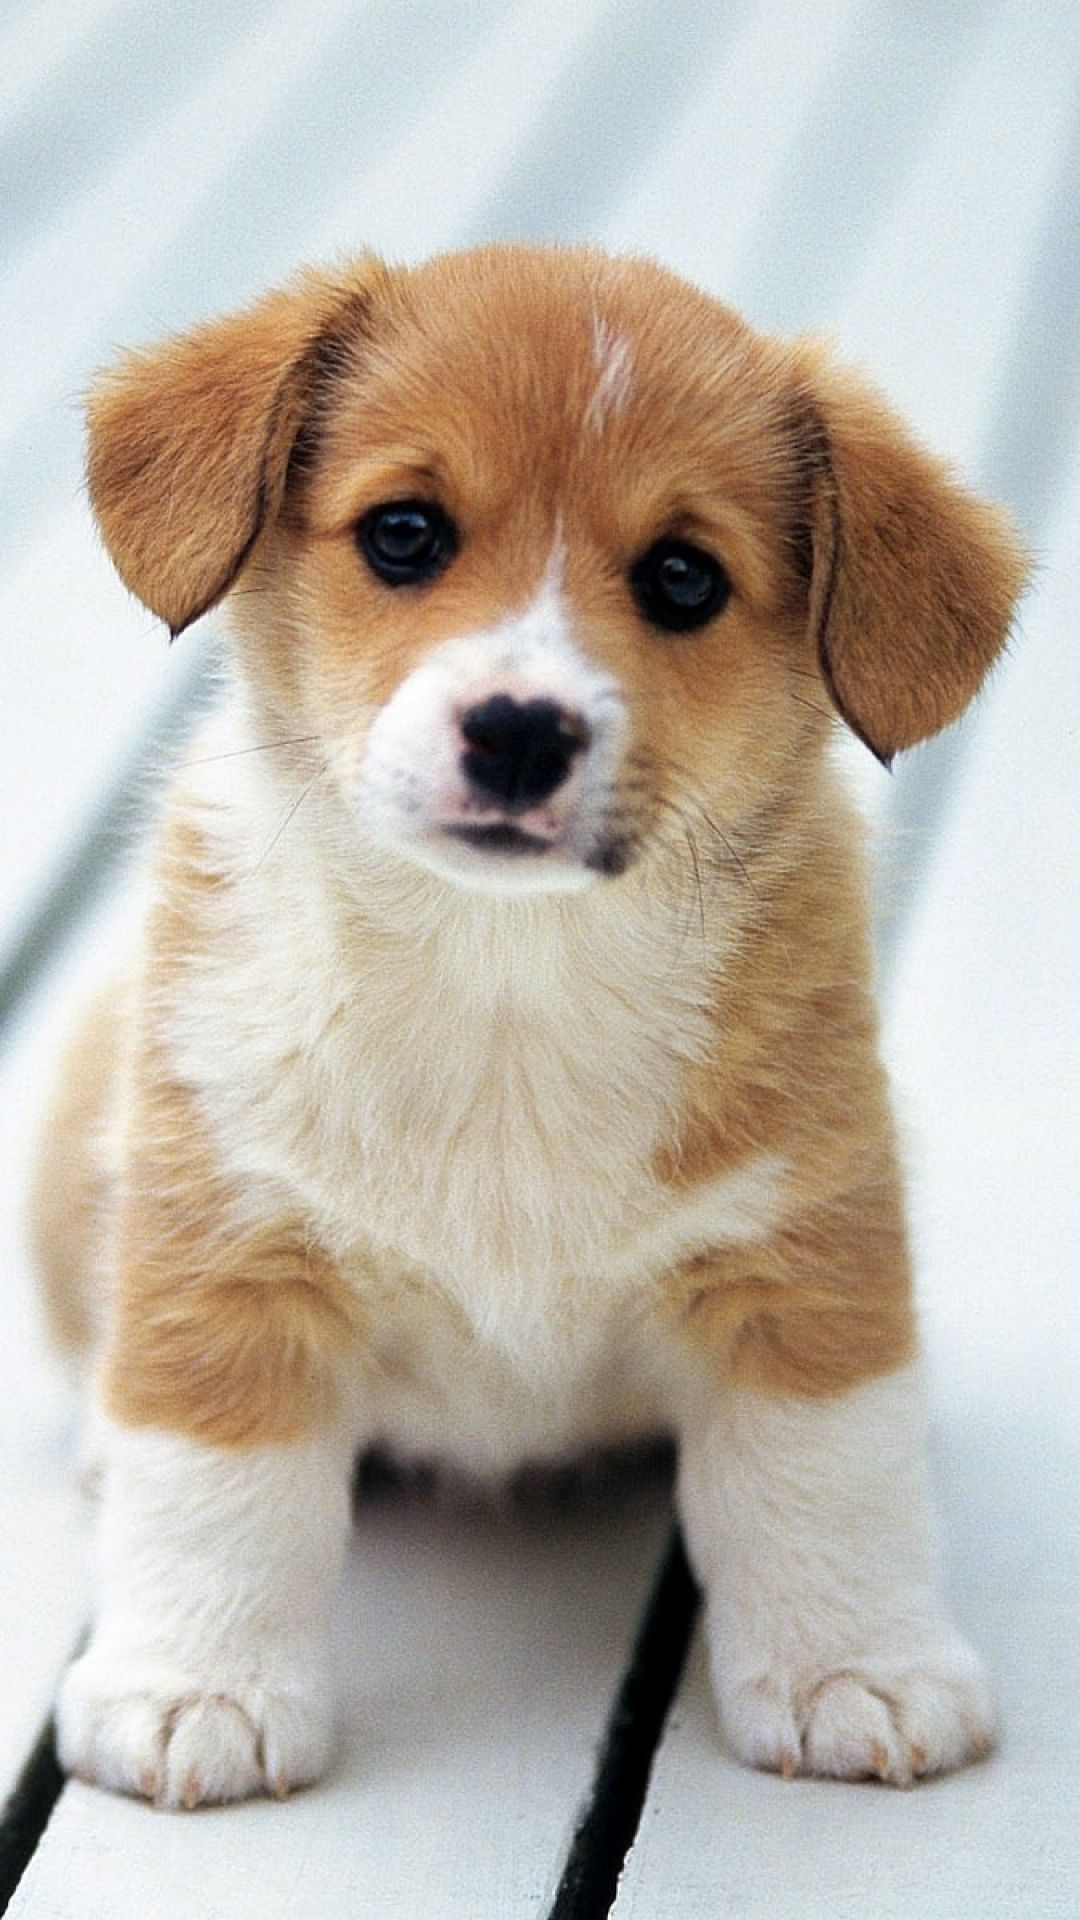 Baby Dog Iphone Wallpaper Kolpaper Awesome Free Hd Wallpapers